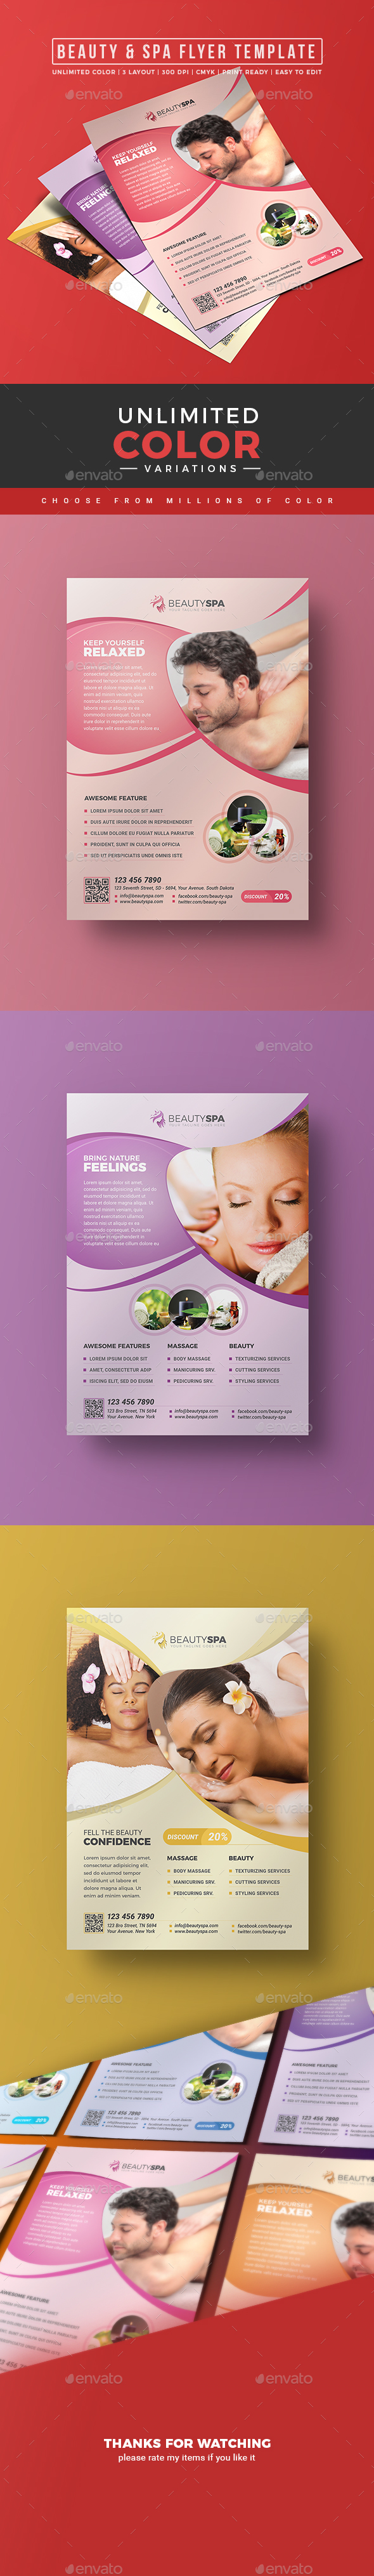 Spa Flyer / Beauty Flyer - Corporate Flyers